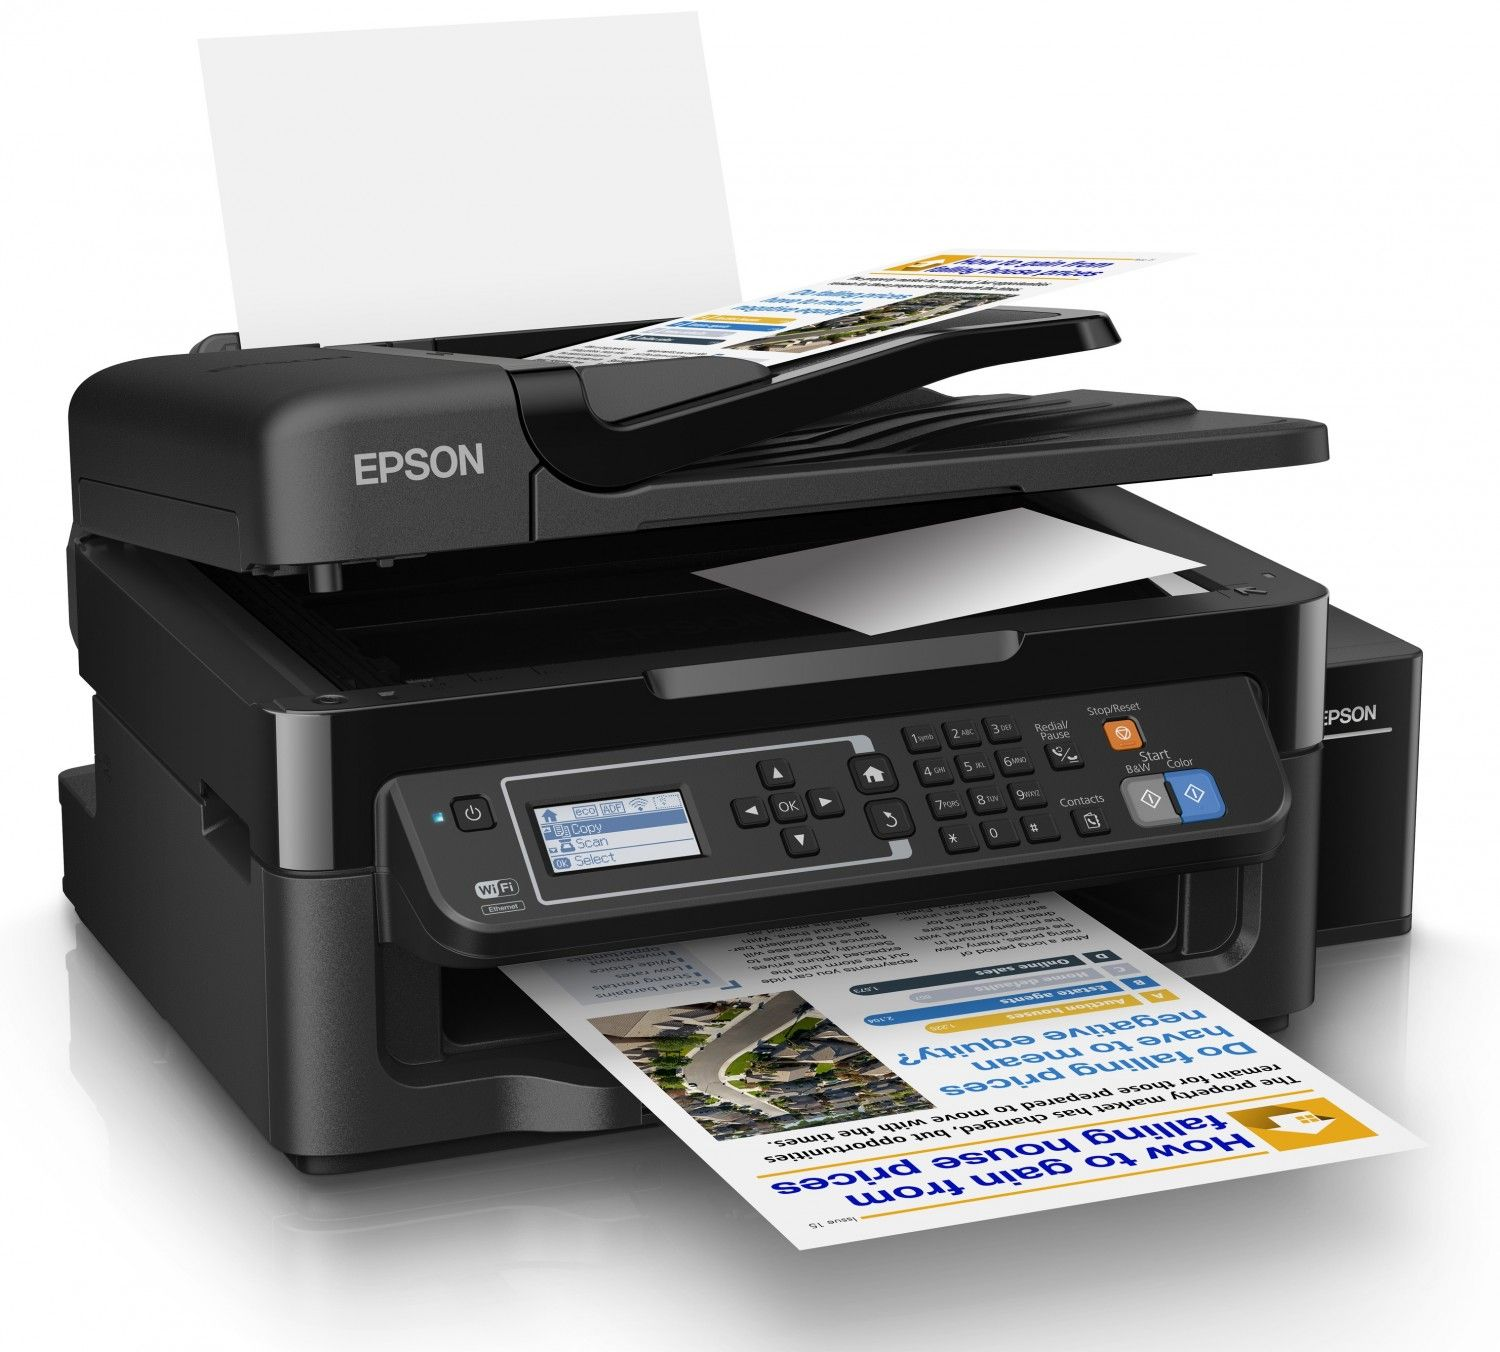 Epson Color Printer Price In Nepal L Printer Price Printer Epson